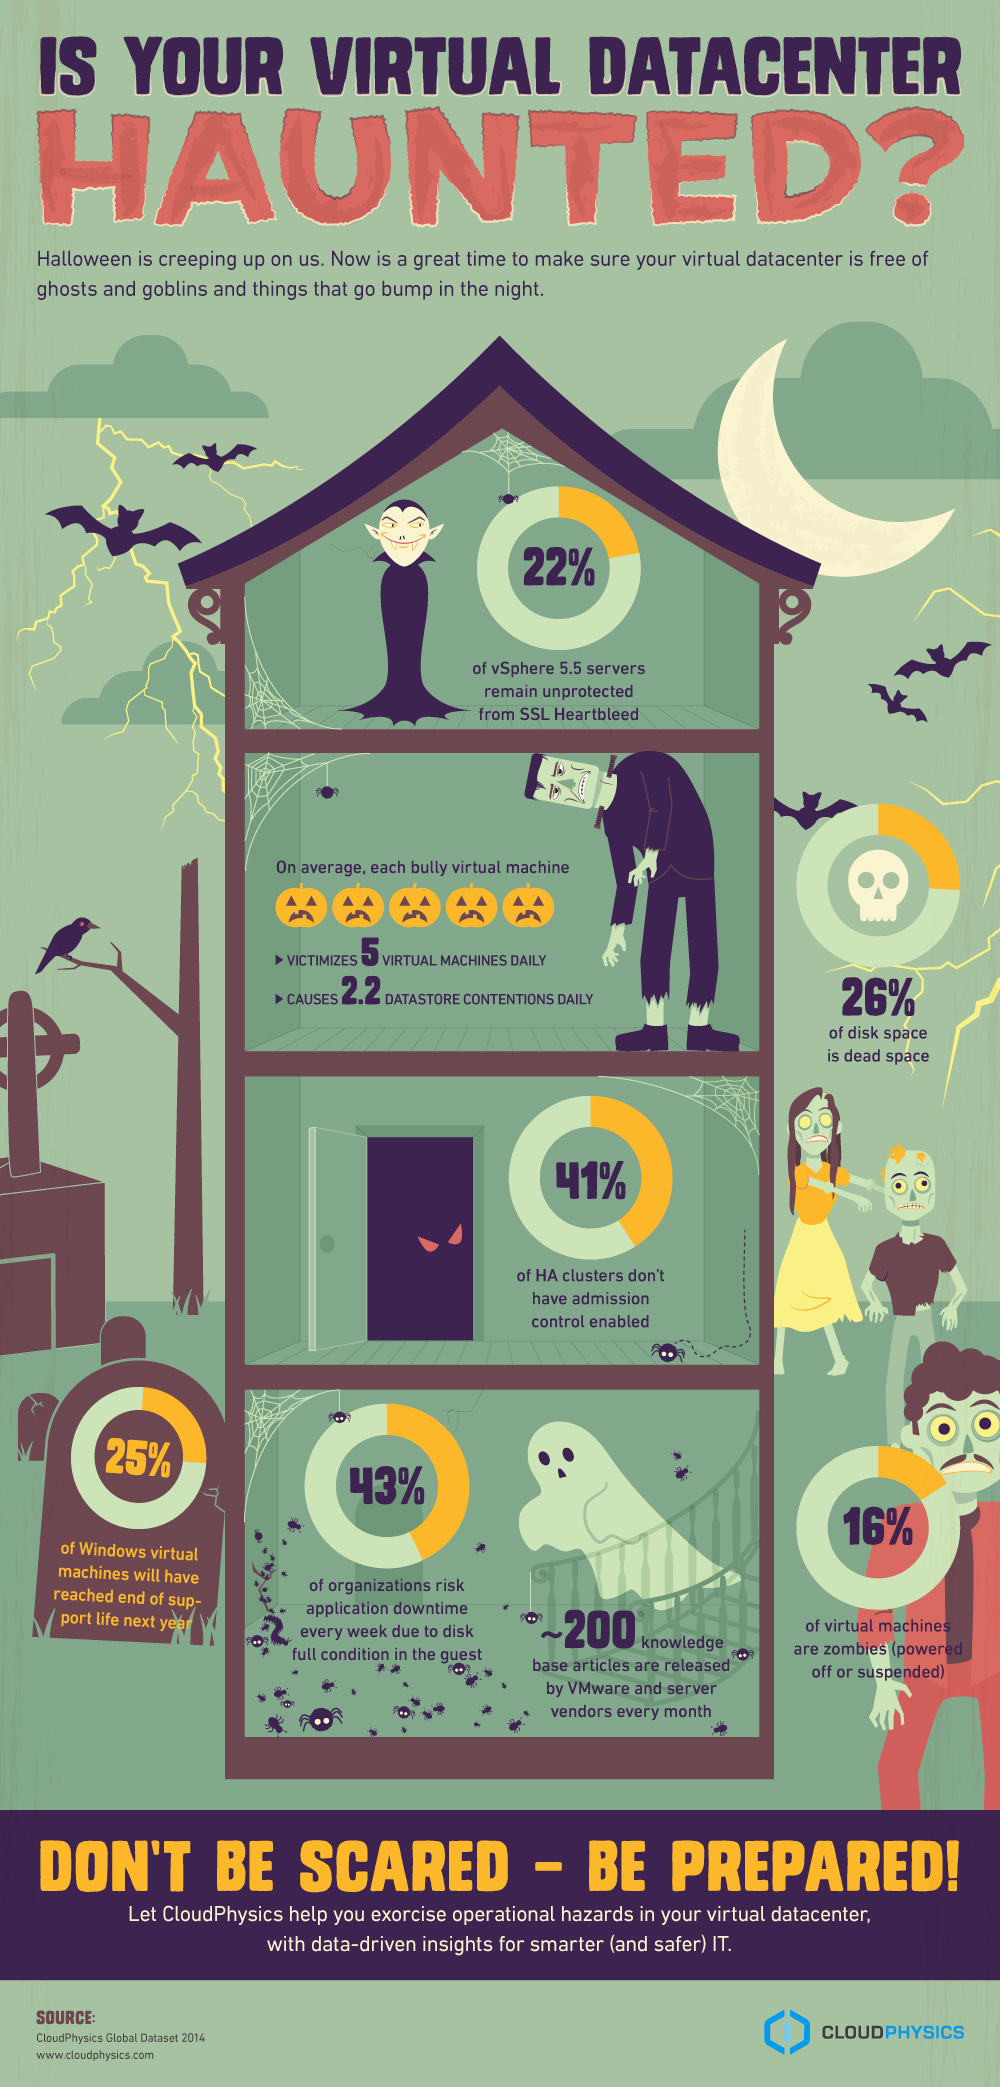 Halloween-infographic-virtual-datacenter-haunted